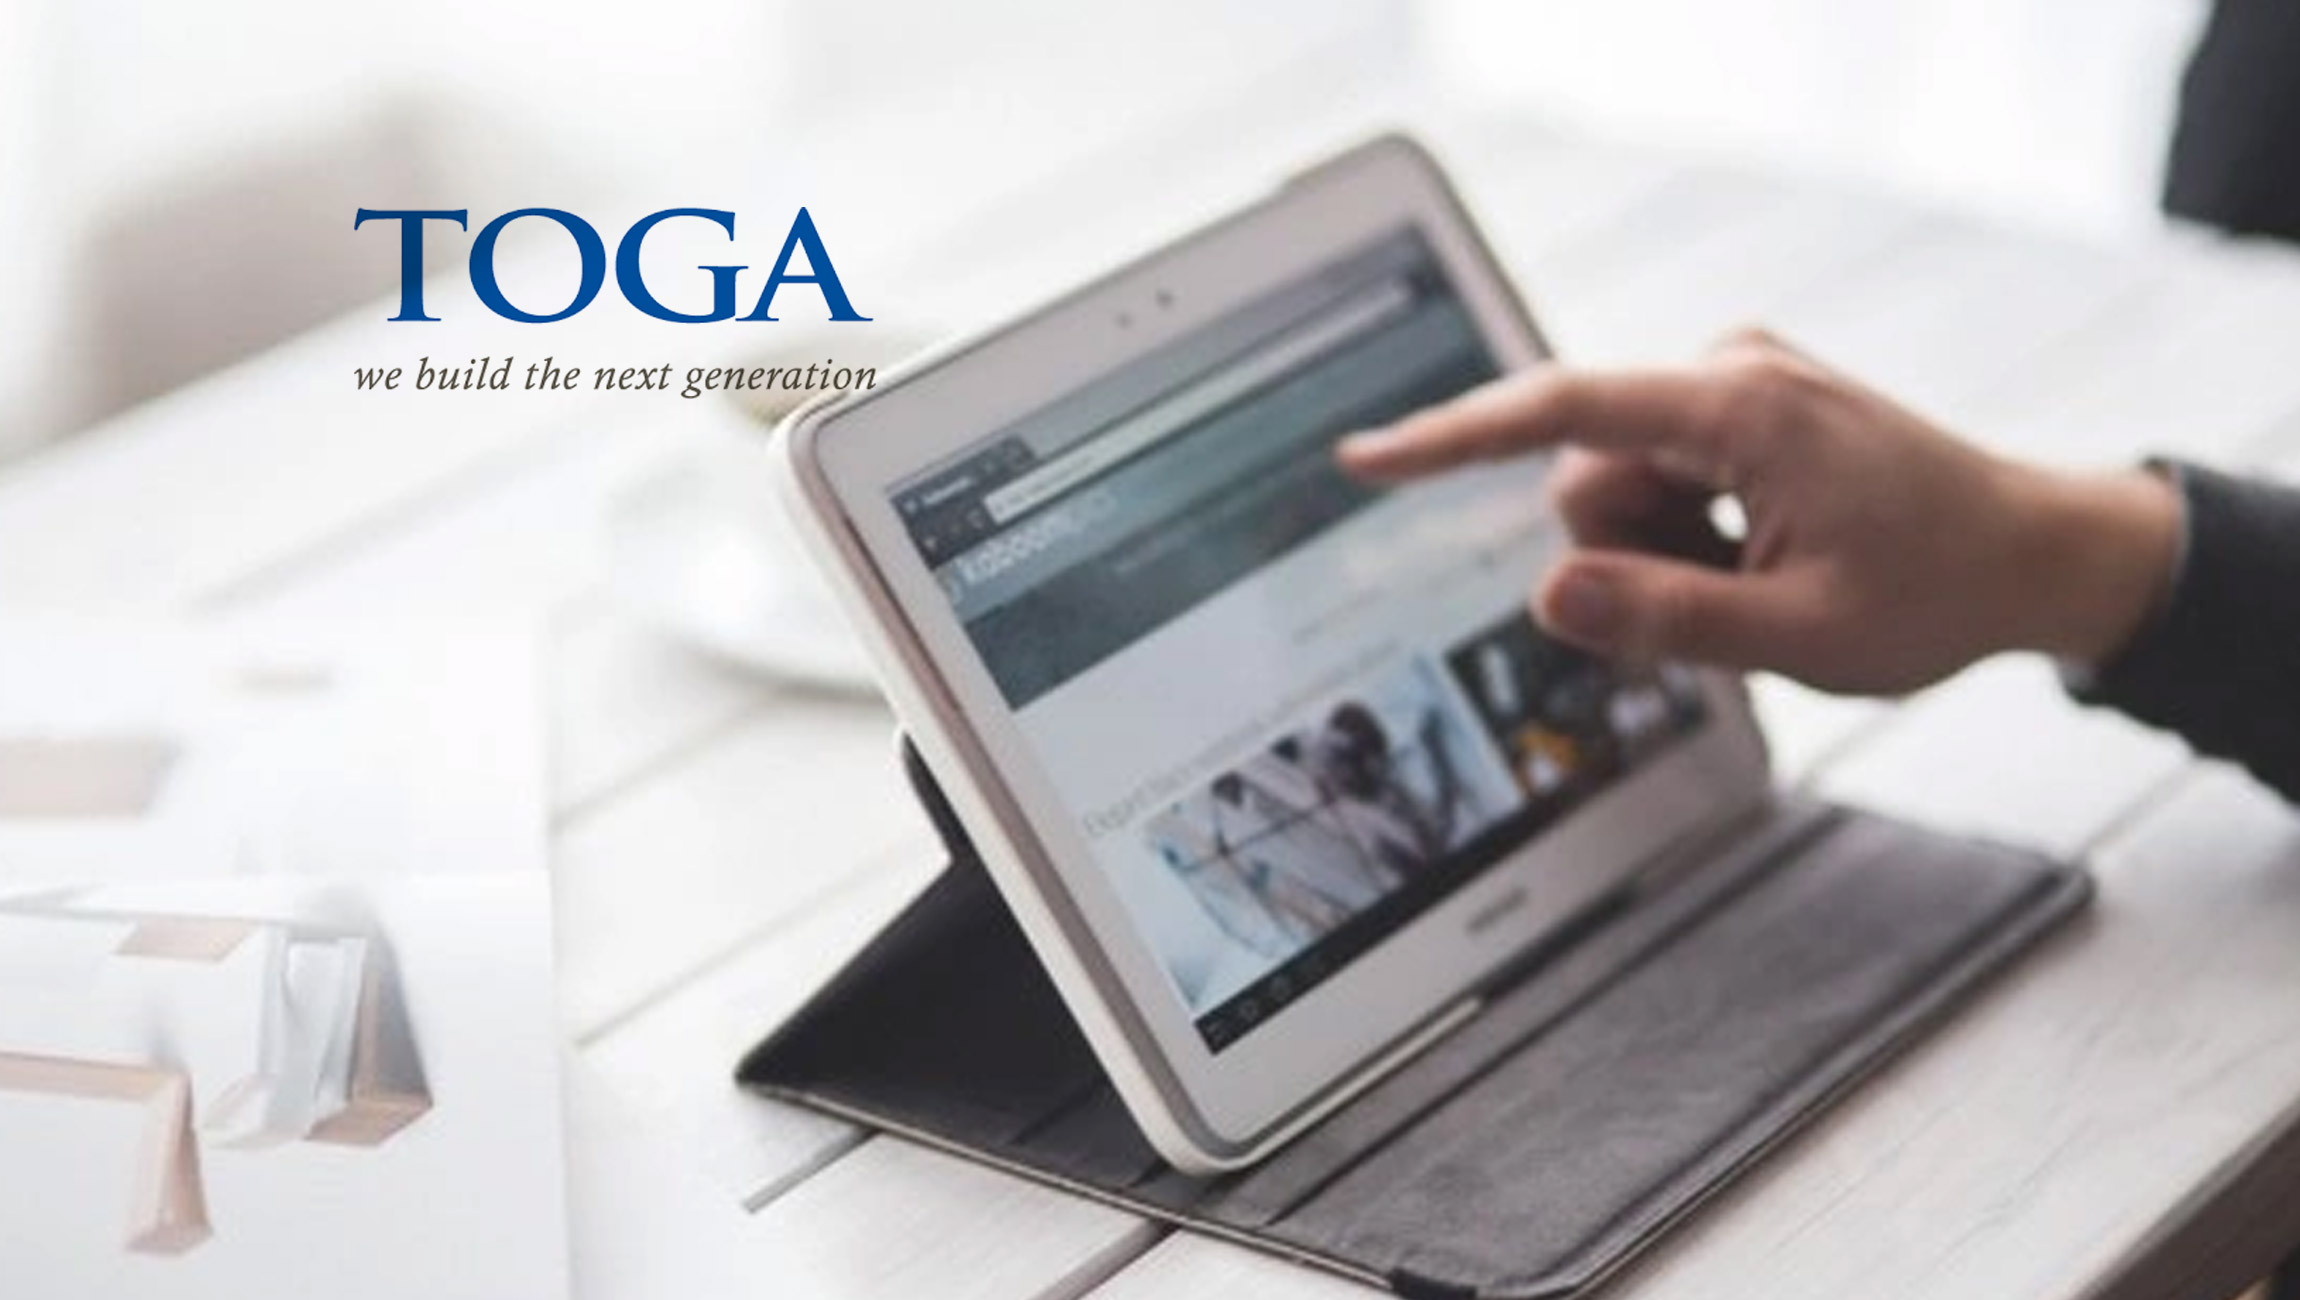 Toga Limited's Yippi App Employs Electronic Know Your Customer Technology to Expediate Its User Onboarding Process